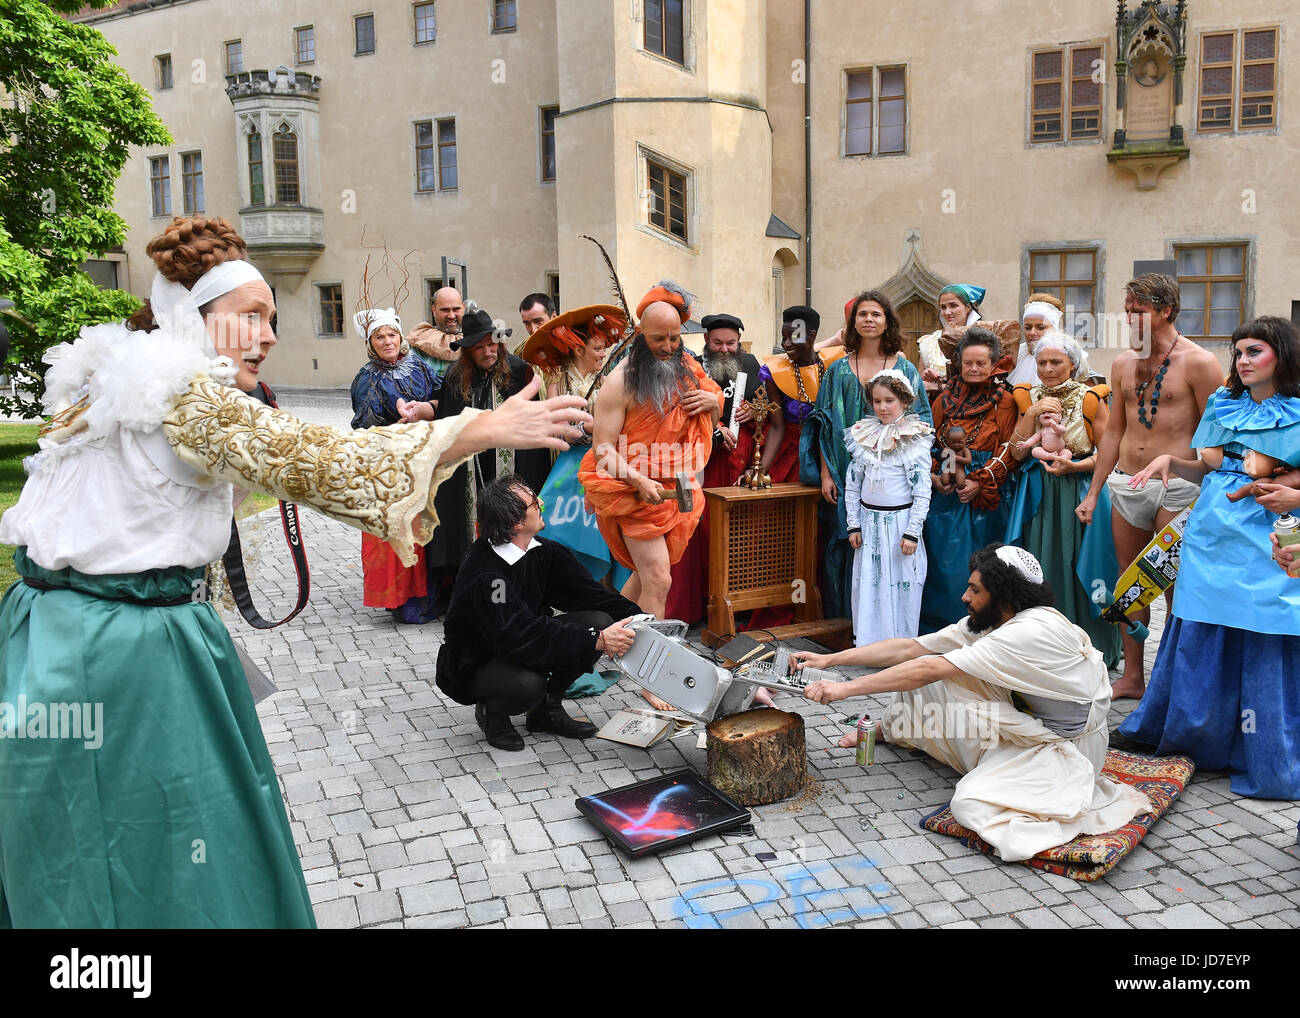 Wittenberg, Germany. 16th June, 2017. Actors pose to create a 'tableau vivant' (literally, 'living picture', - Stock Image